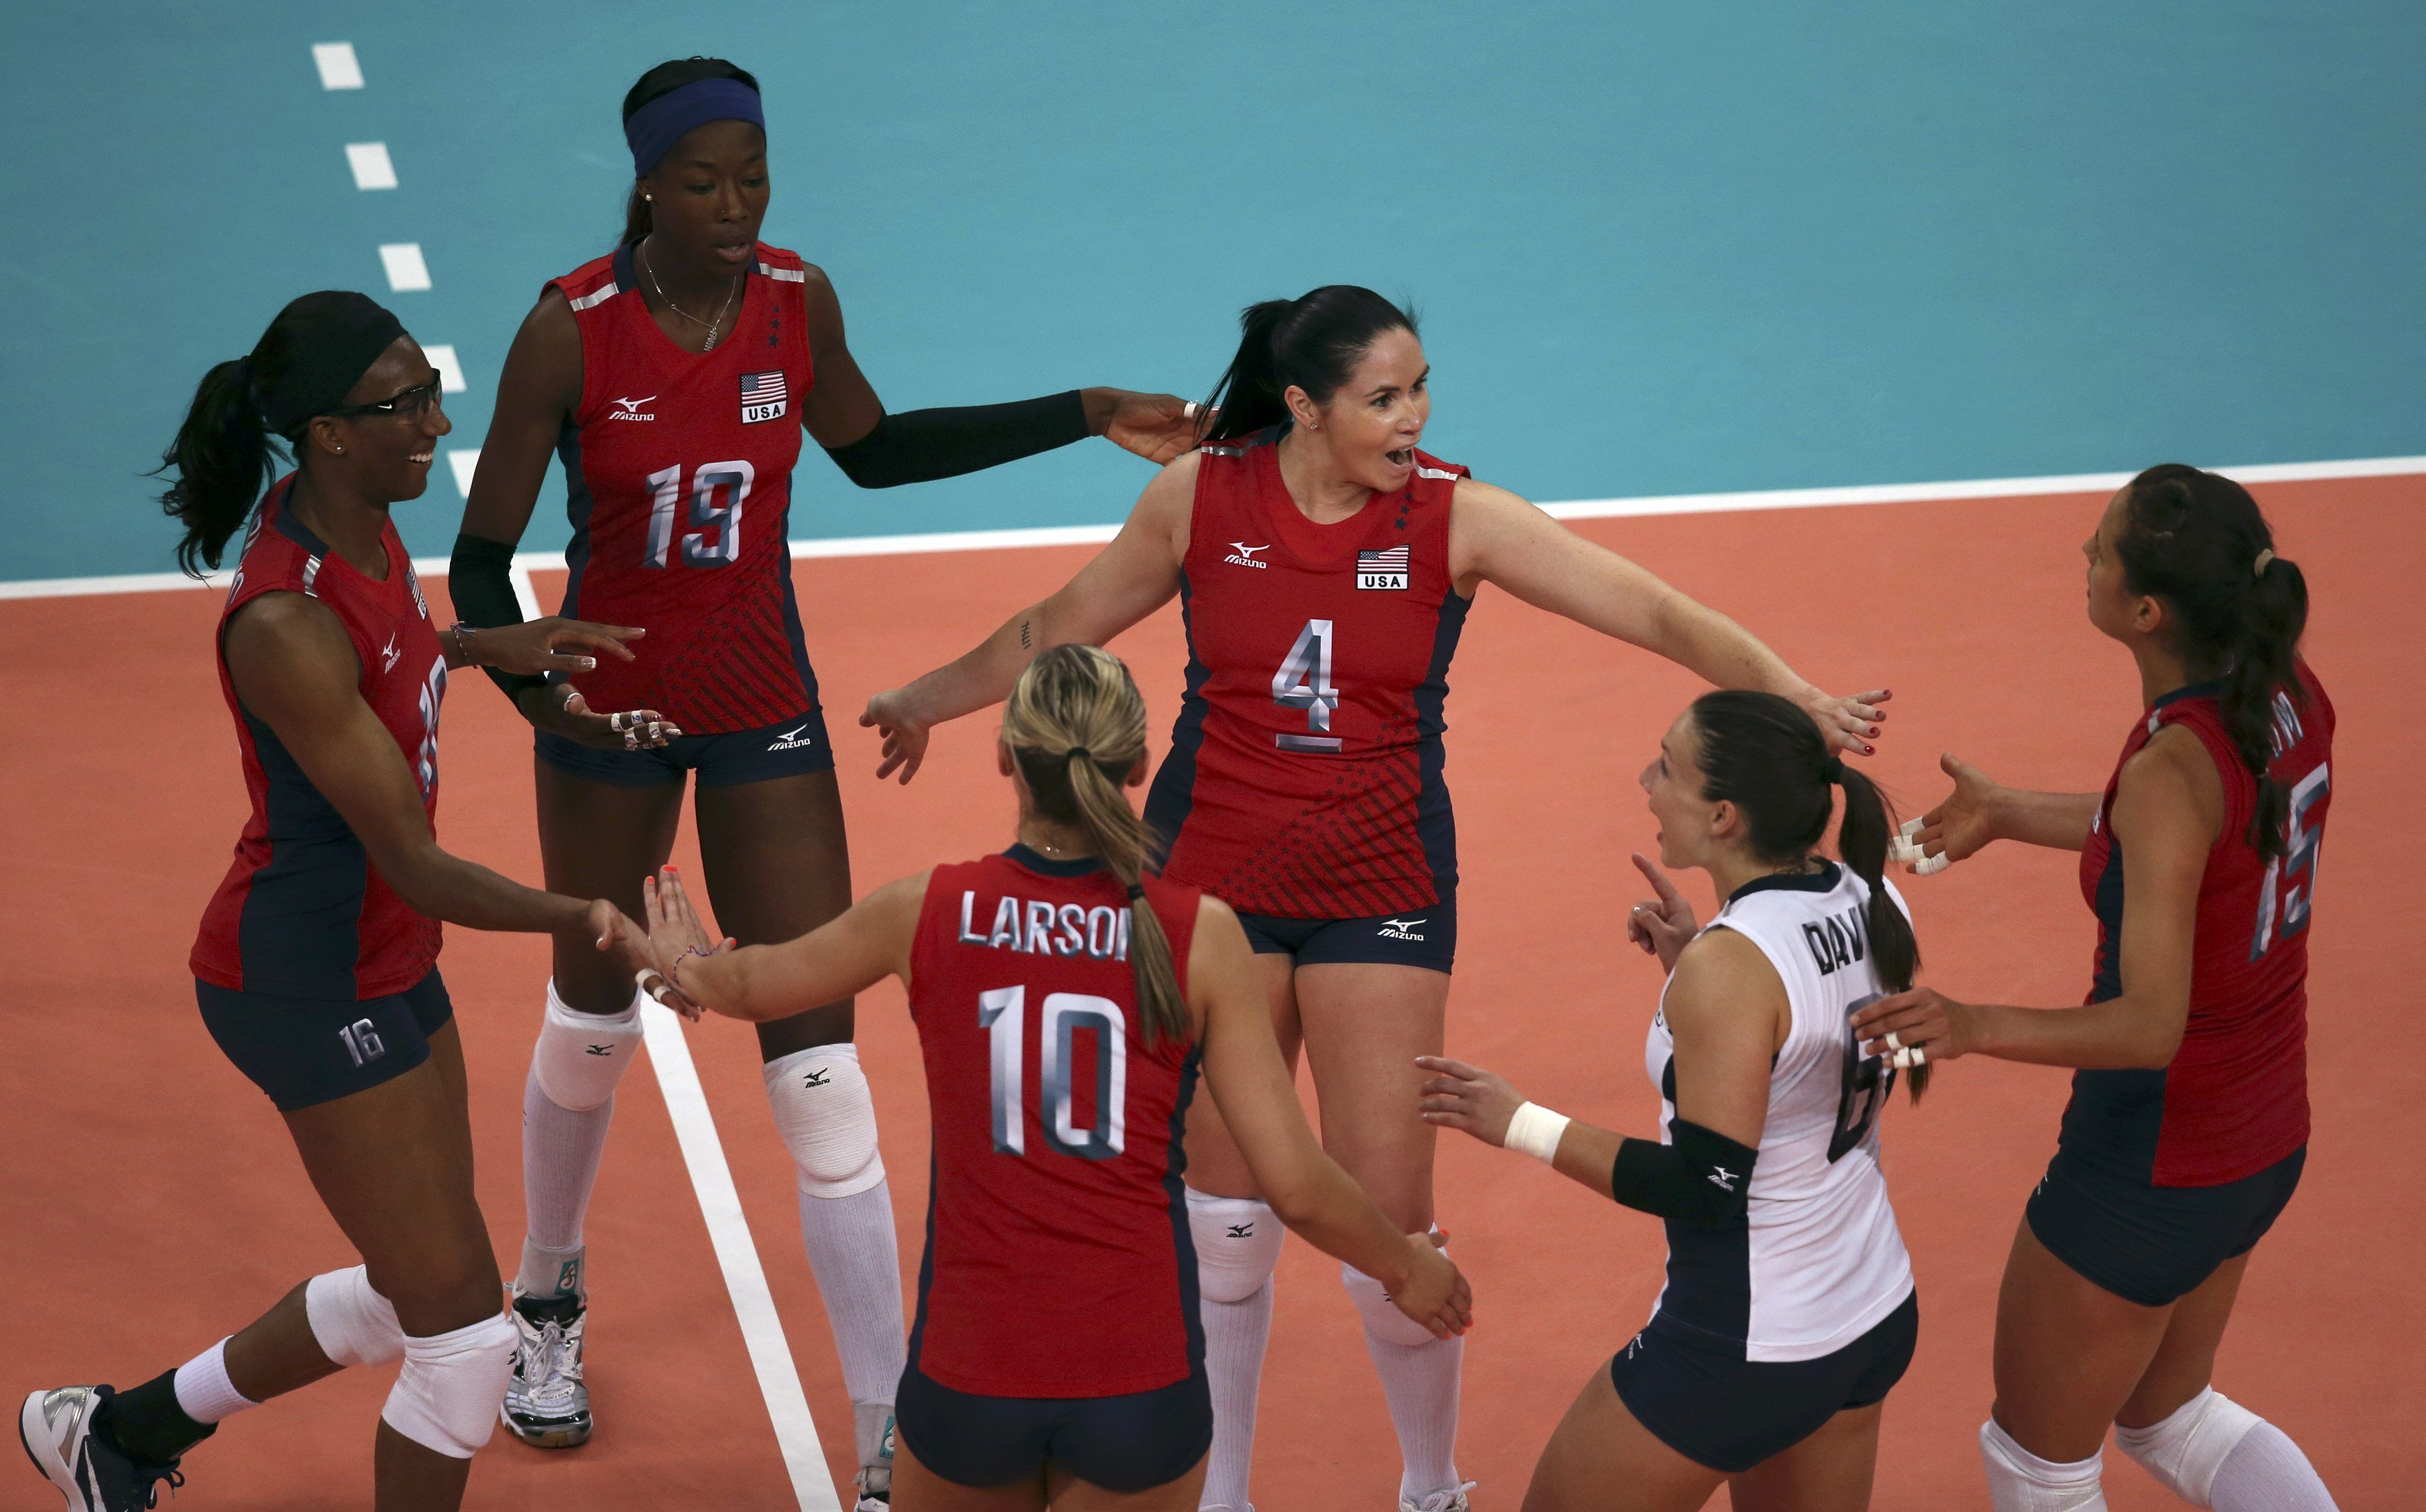 Our Women S Volleyball Team Is Amazing 3 Usa Volleybal